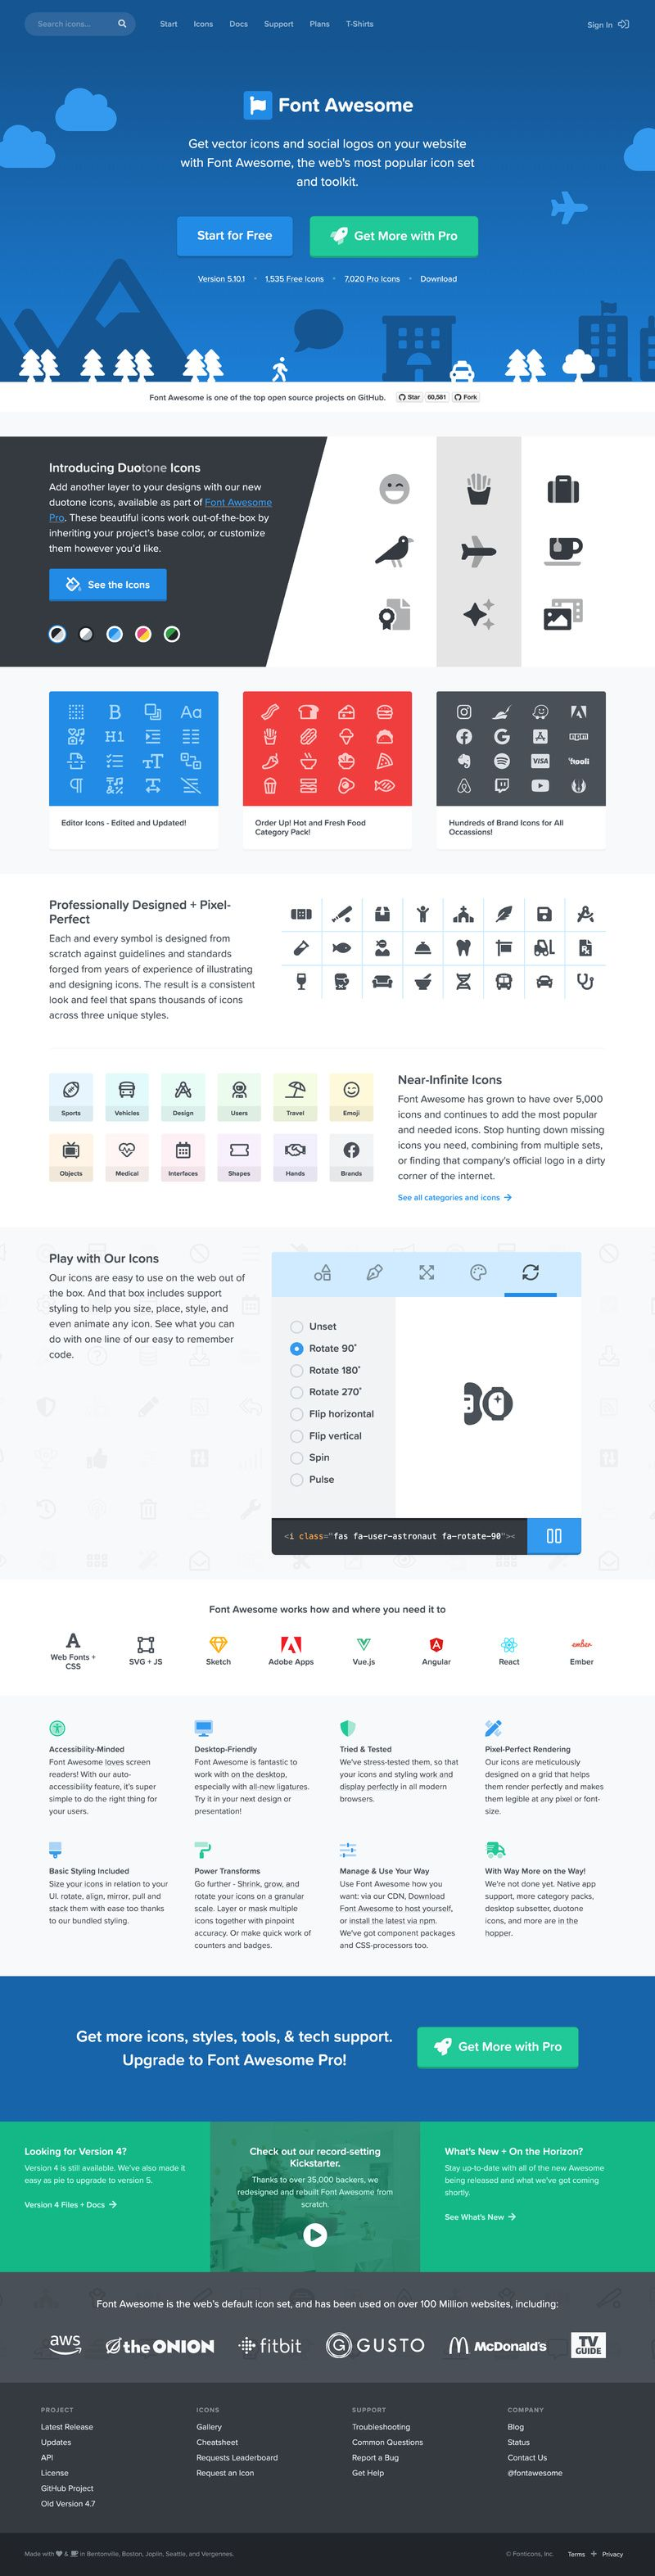 WebDesign Font Awesome The worlds most popular and